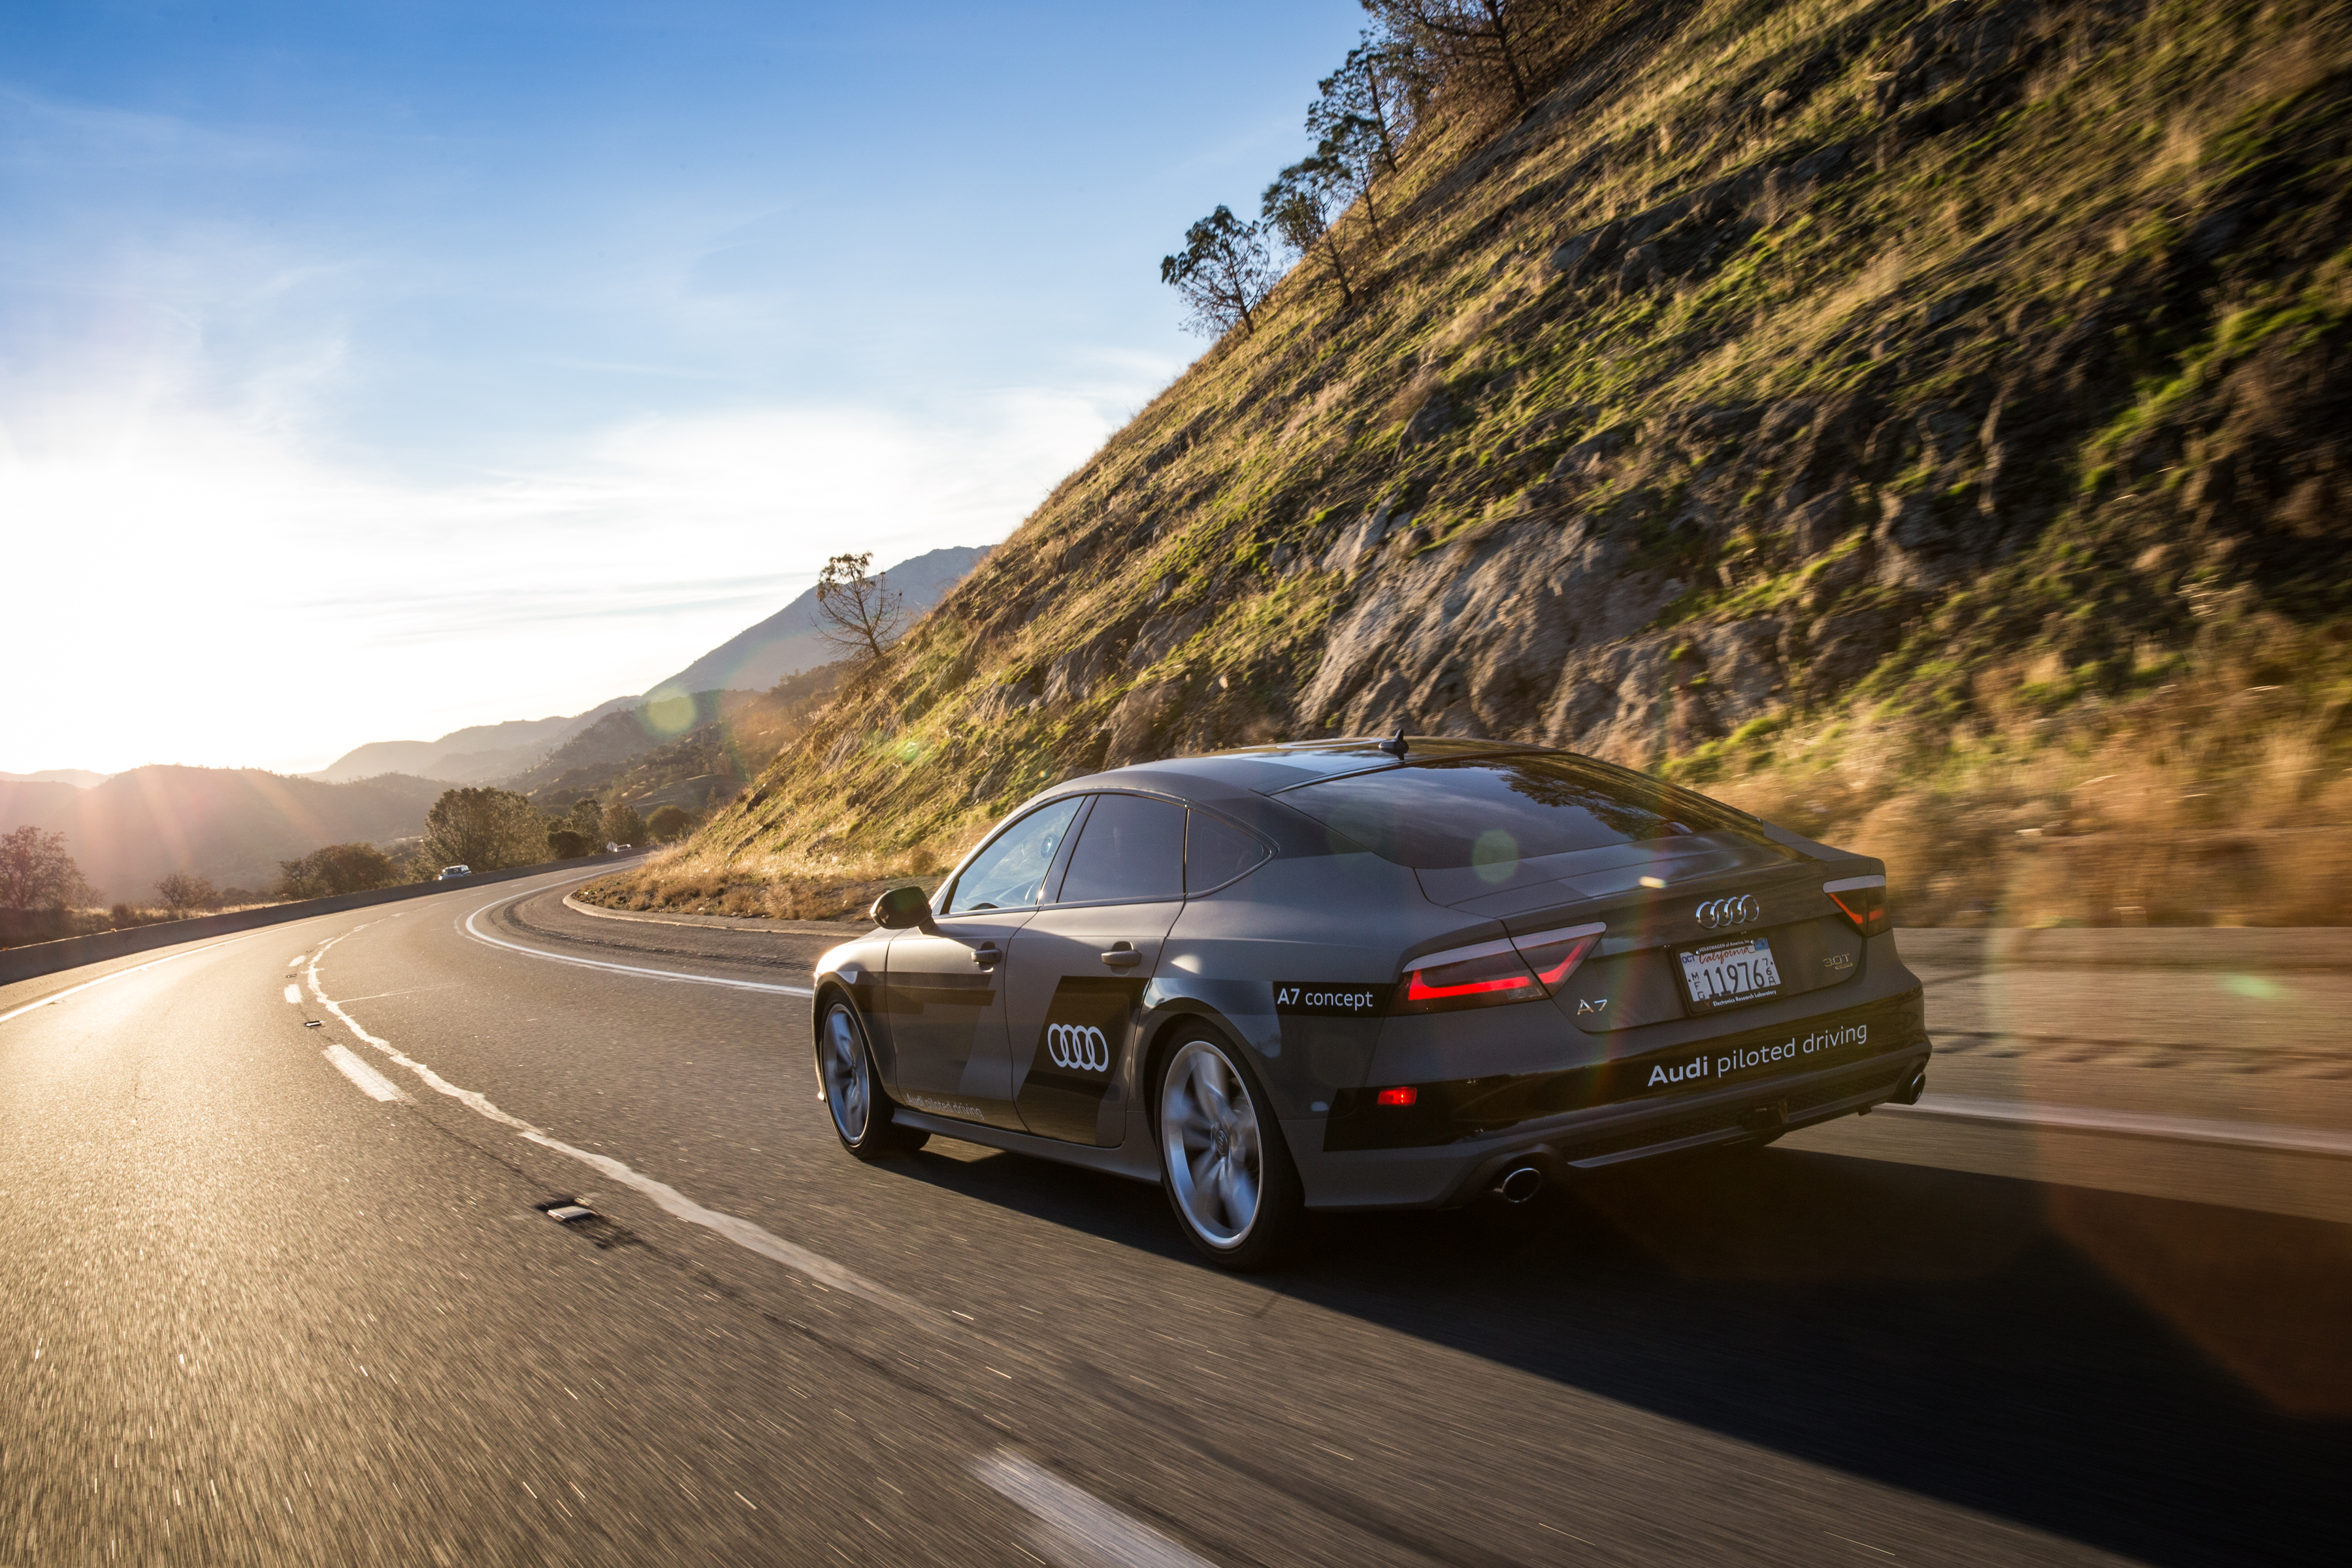 Audi's self-driving A7 made a  560-mile road trip from Silicon Valley to Las Vegas in 2015. A Fortune reporter was one of five journalists to experience an autonomous car.